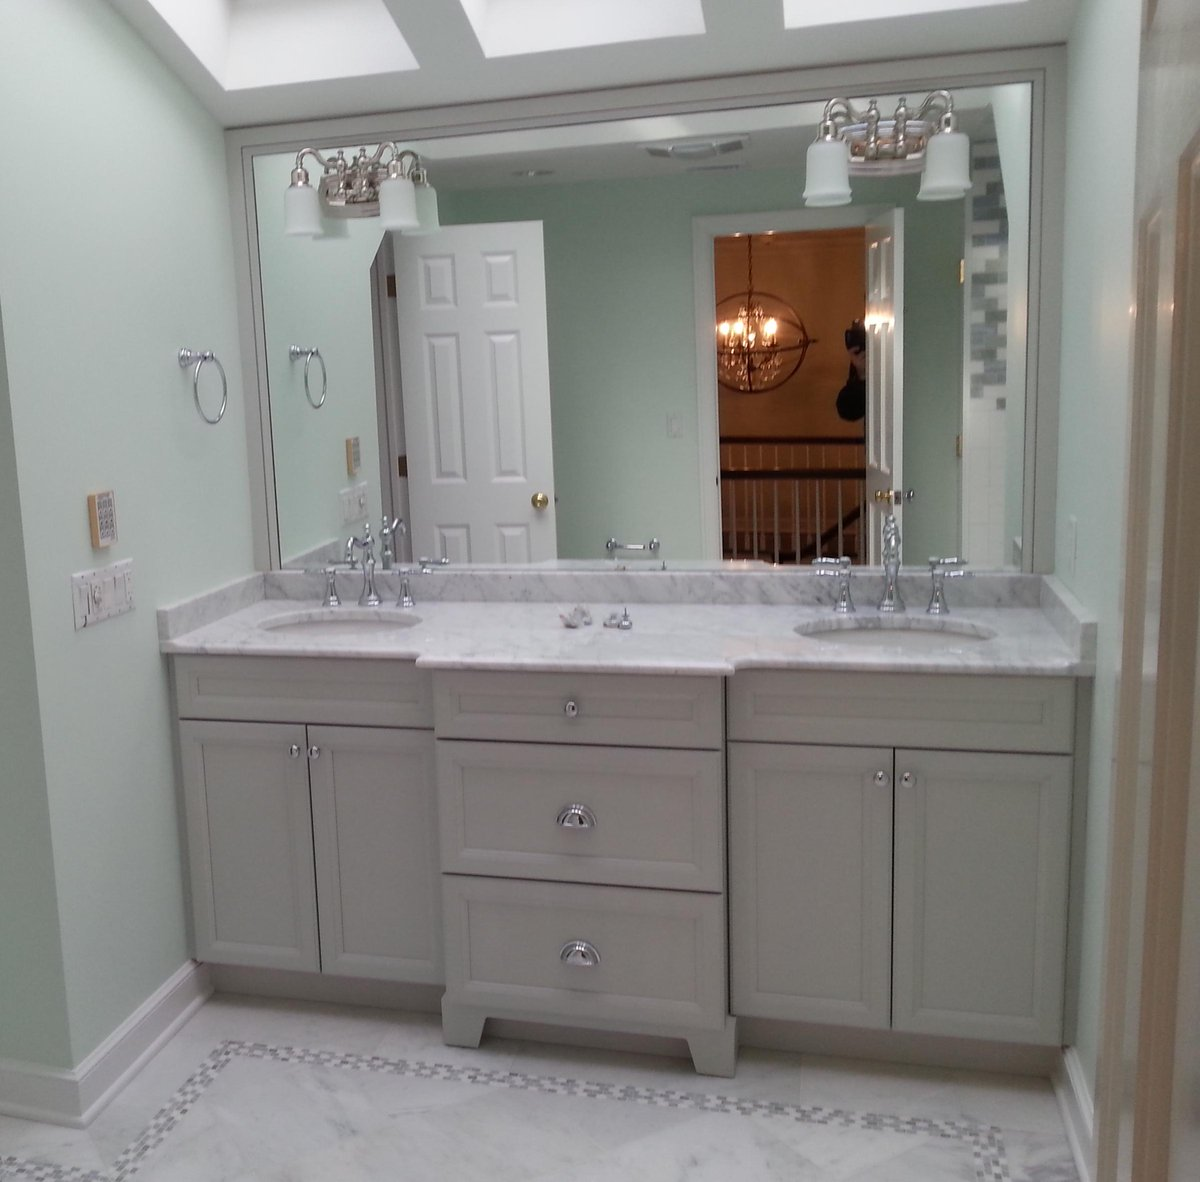 broadway kitchens on twitter completed white shaker bathroom kohler sinks and faucets topknobs hardware and ultracraft double sink vanity - Shaker Bathroom 2015